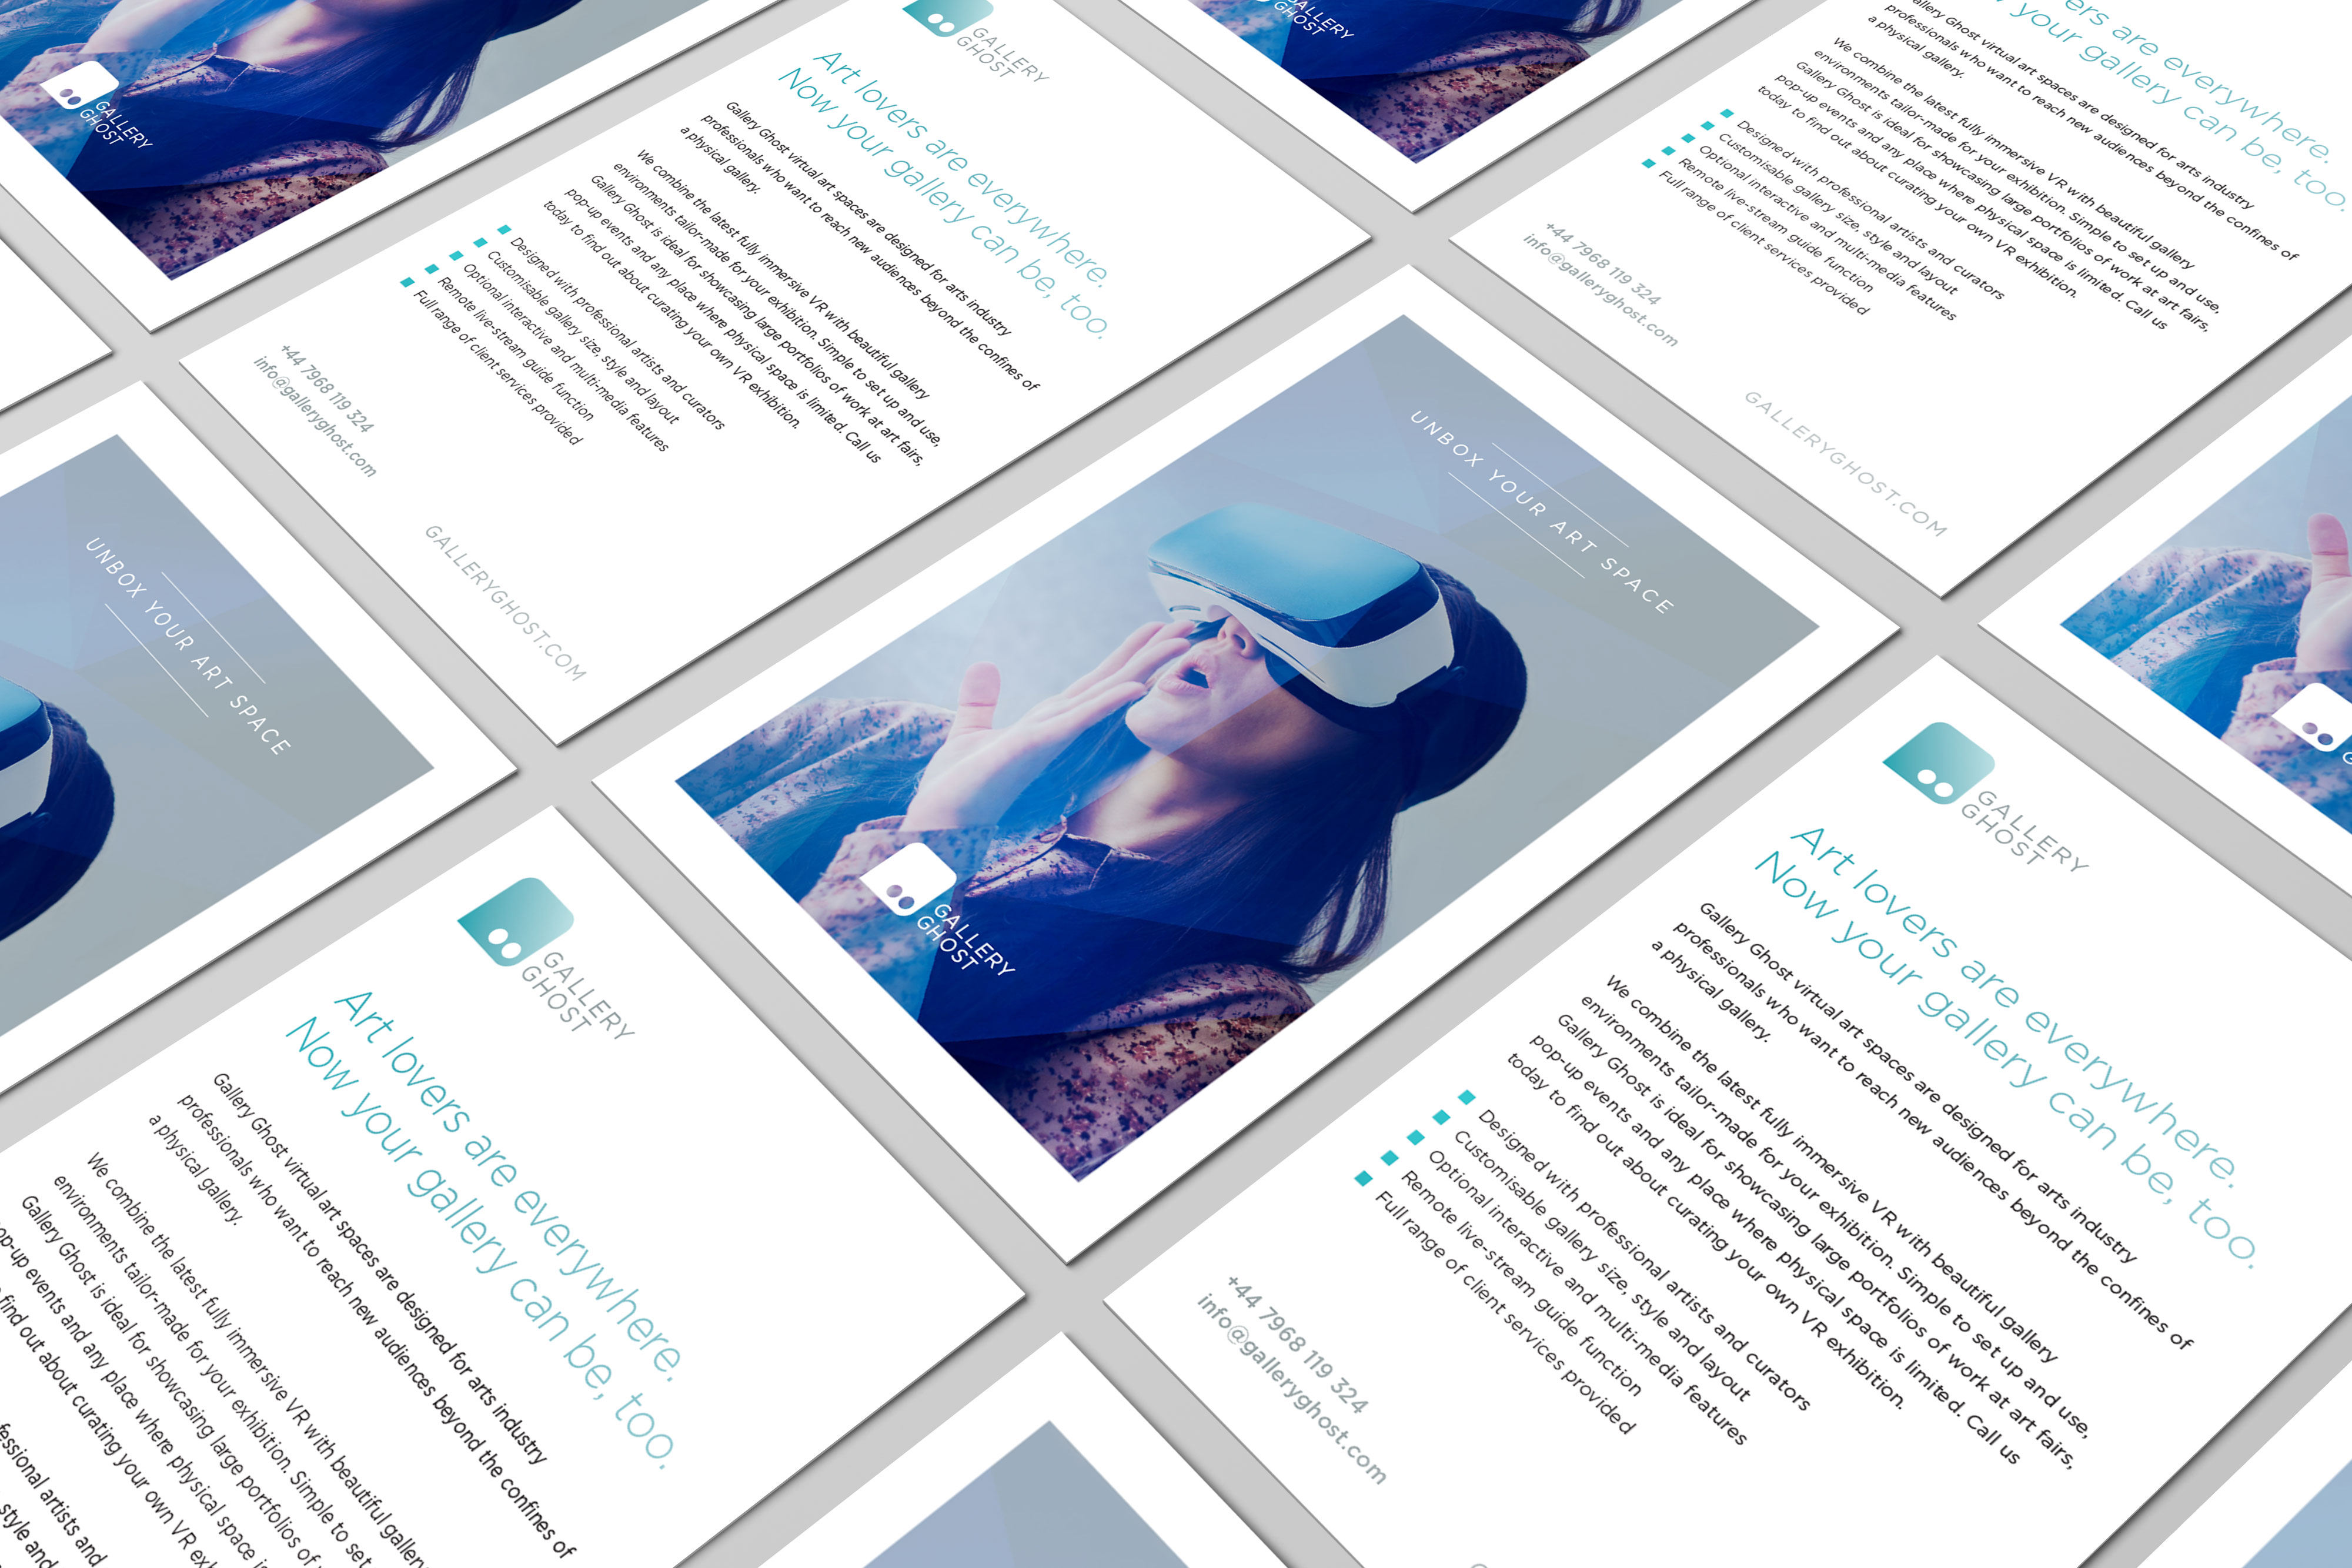 Rapid identity and collateral for VR startup